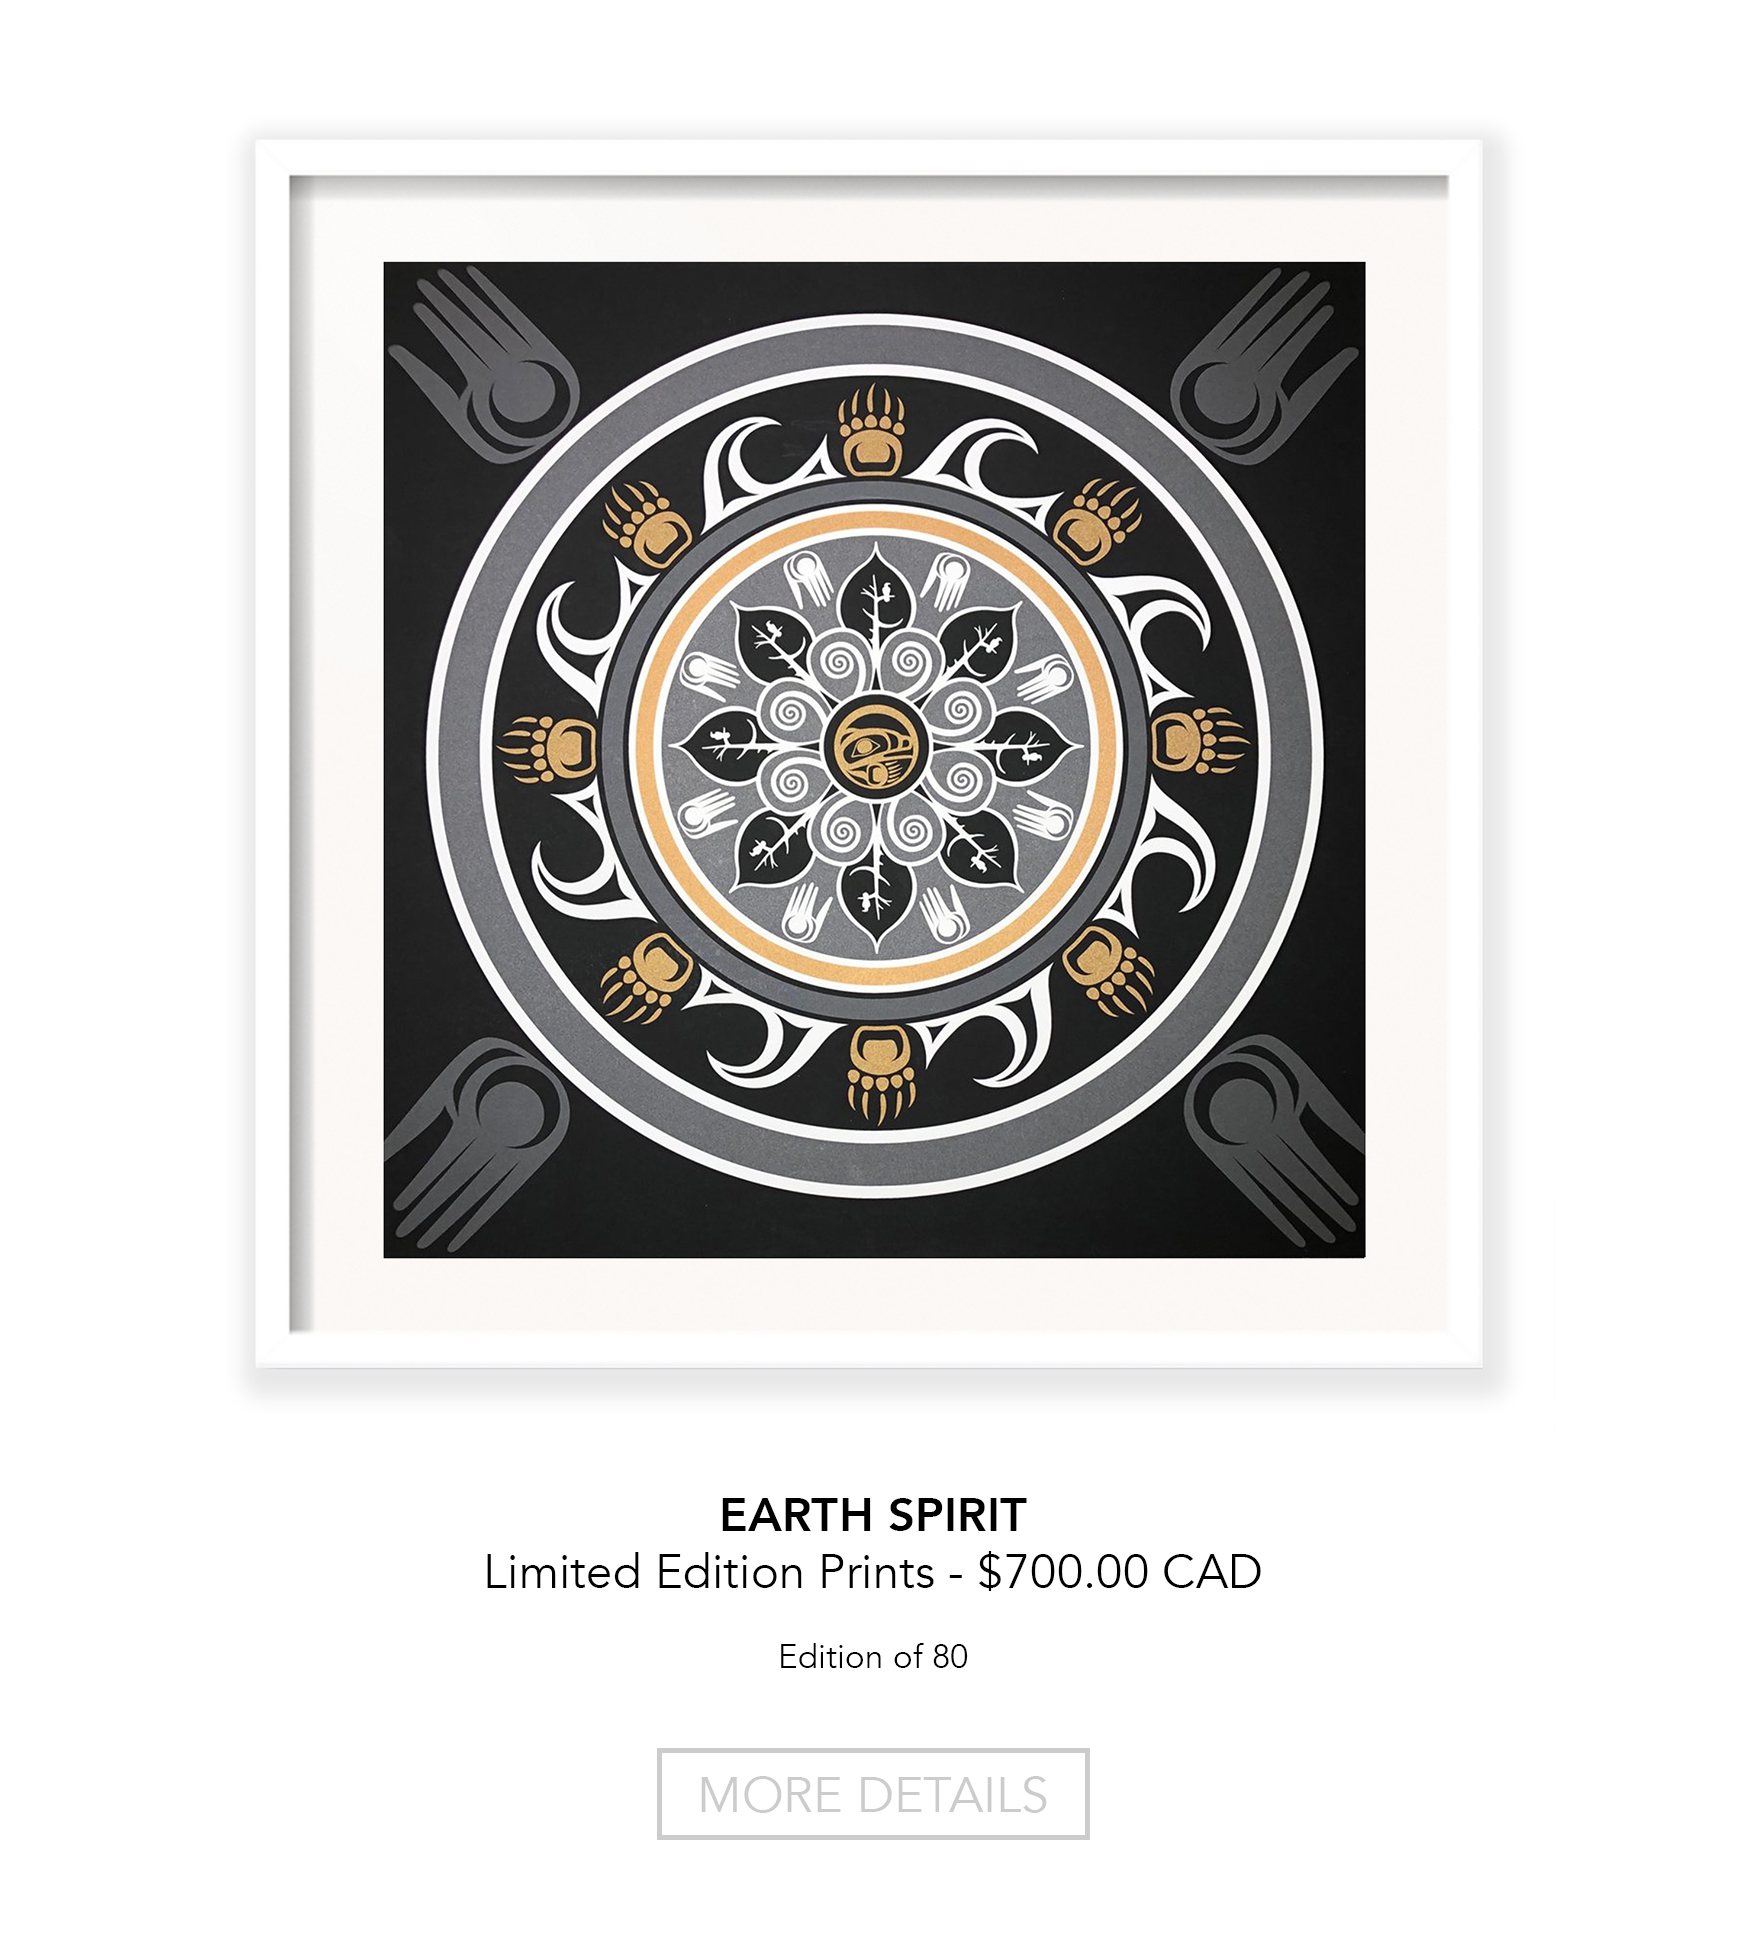 Earth-Spirit-Limited-Edition-Prints-Roy-Henry-Vickers-Lizzie-Snow-fortyonehundred.jpg